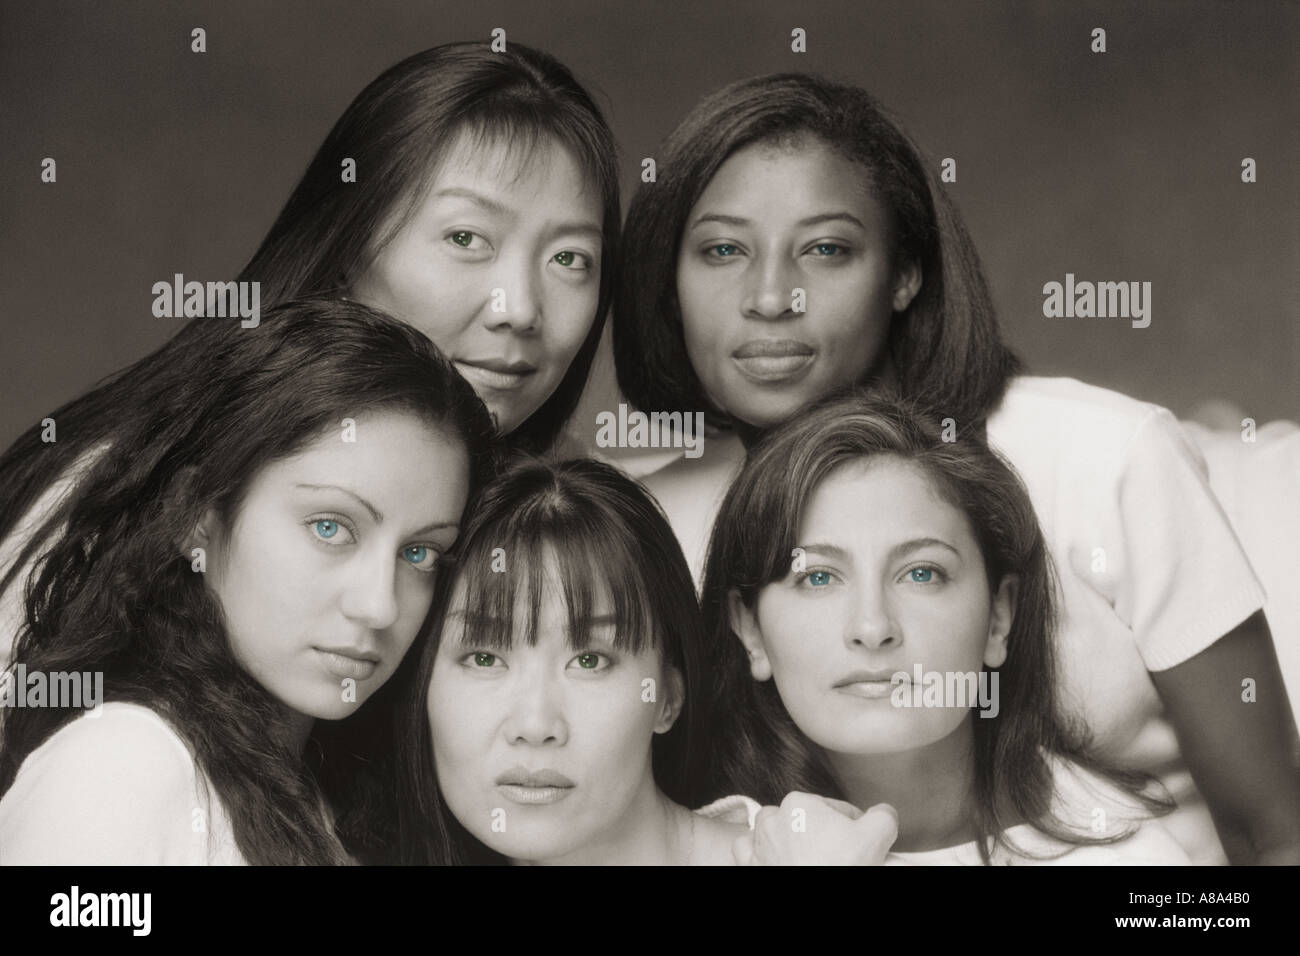 Five beautiful women and four different races - Stock Image